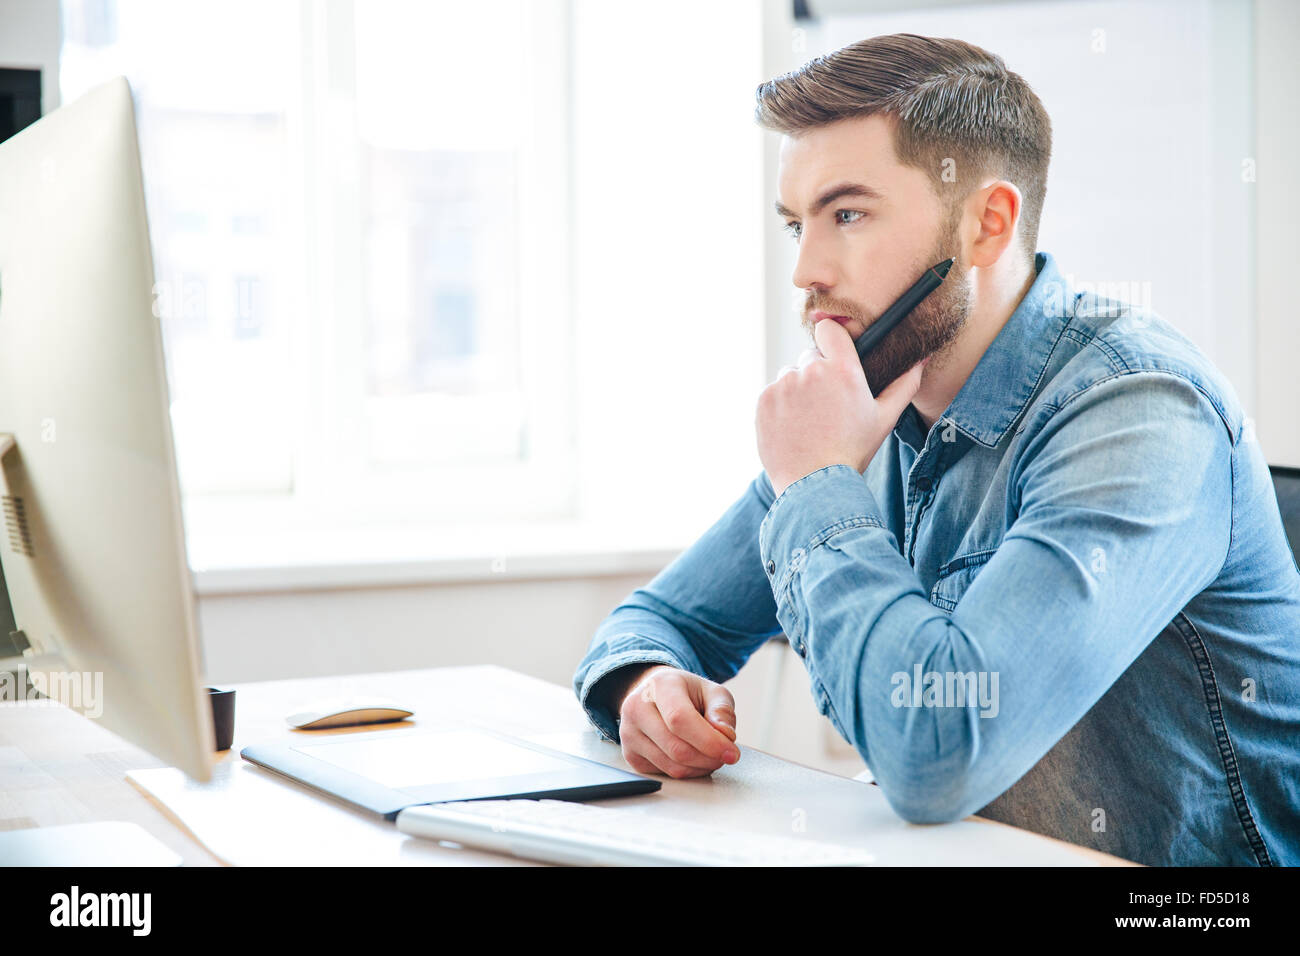 Pensive attractive bearded male designer in jeans shirt thinking and making blueprints using pen tablet - Stock Image